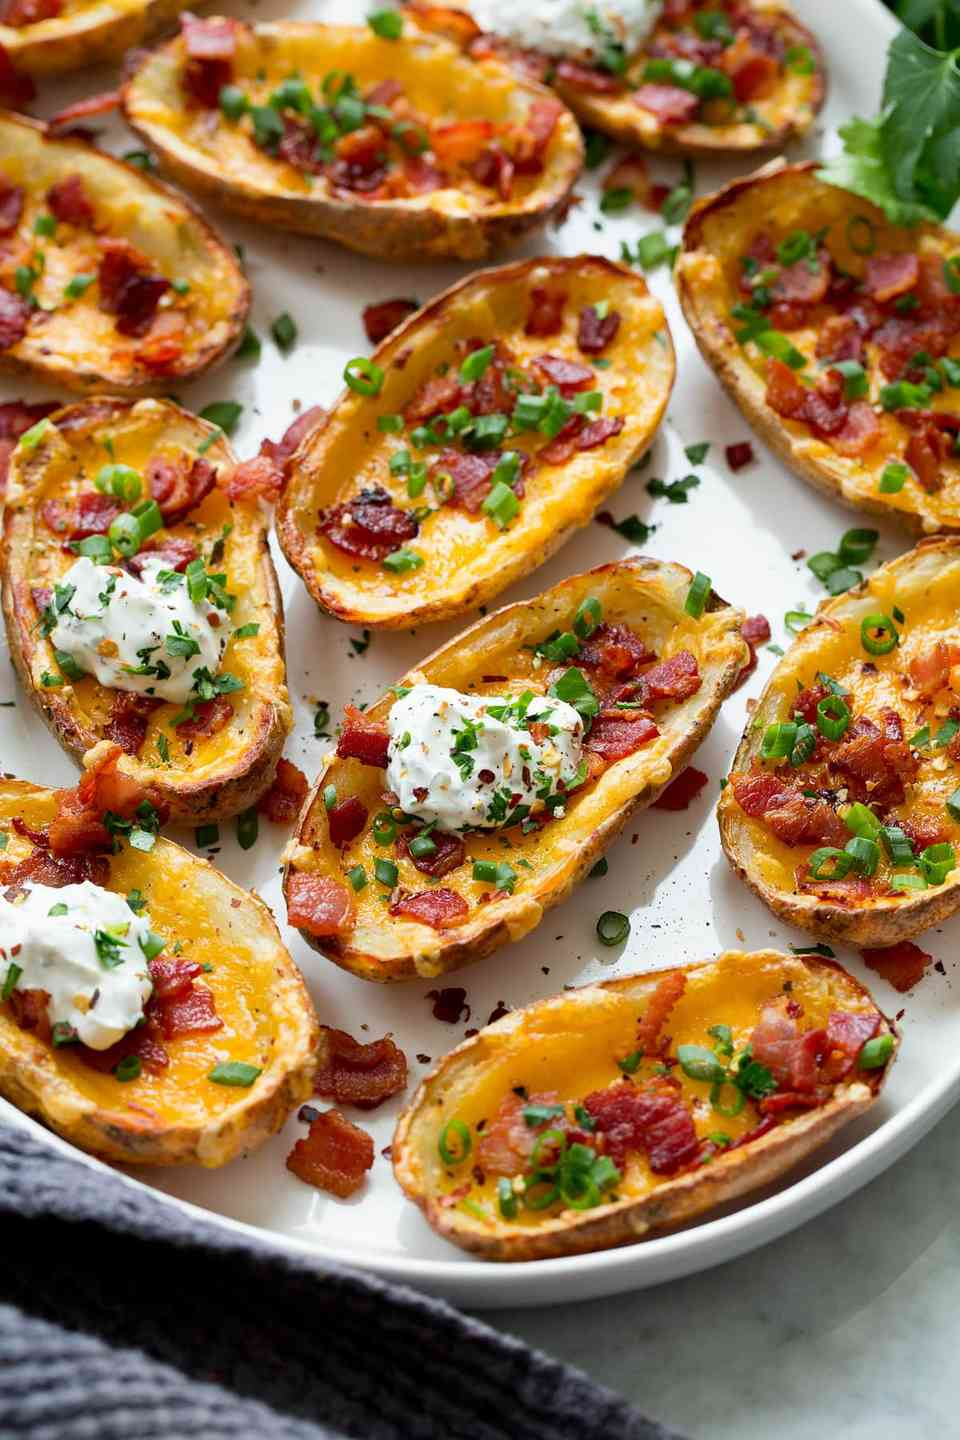 Potato Skins with Bacon & Cheddar Cheese Platte